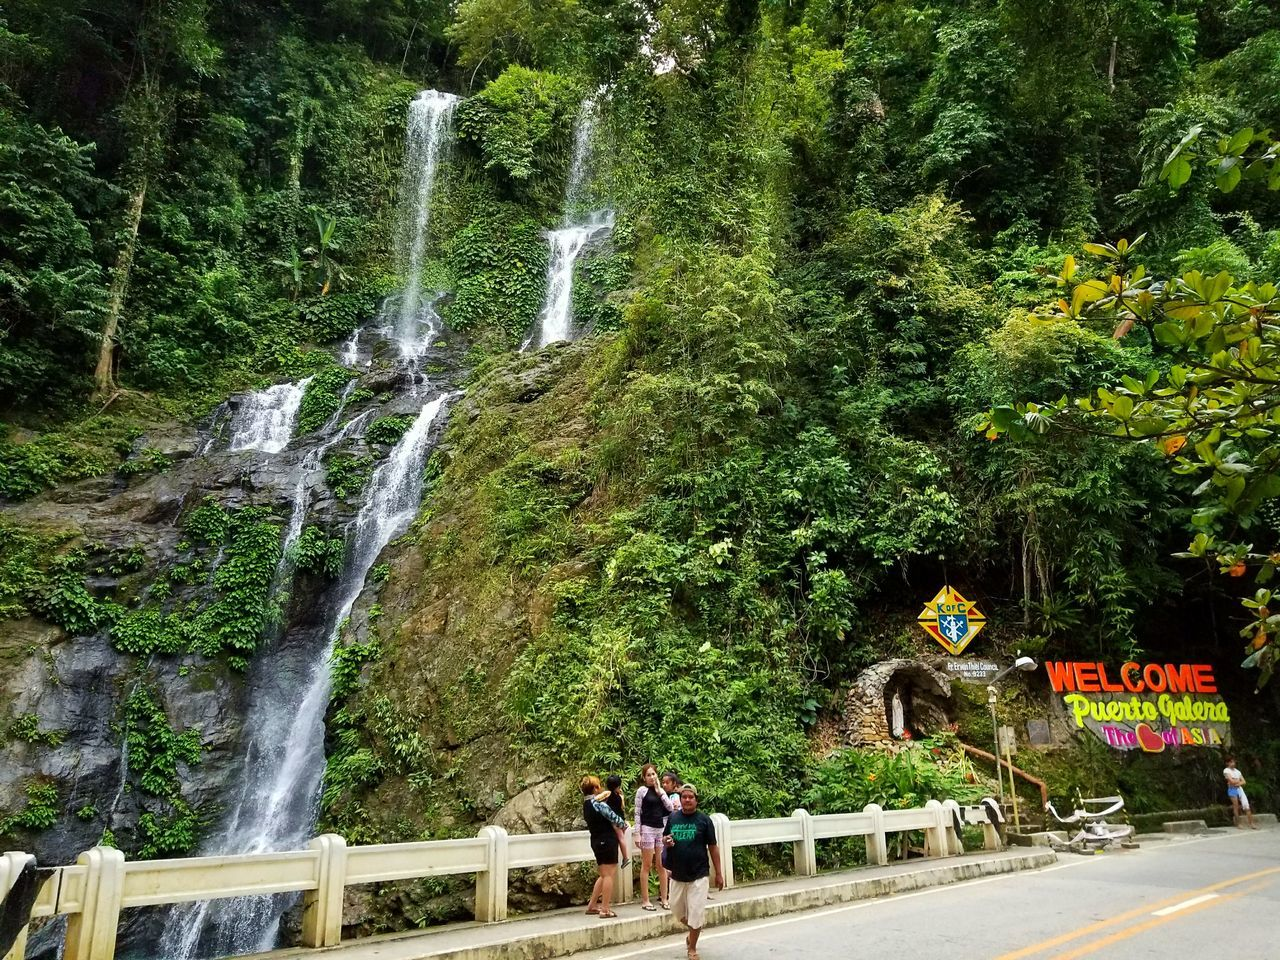 Tamaraw falls in mindoro PhilippinesEyeEm Best Shots Travel Travel Photography Tropical Climate Travelphotography EyeEmBestPics Waterfall Philippines Photos Vacations Travel Destinations Landscape Beauty In Nature Water